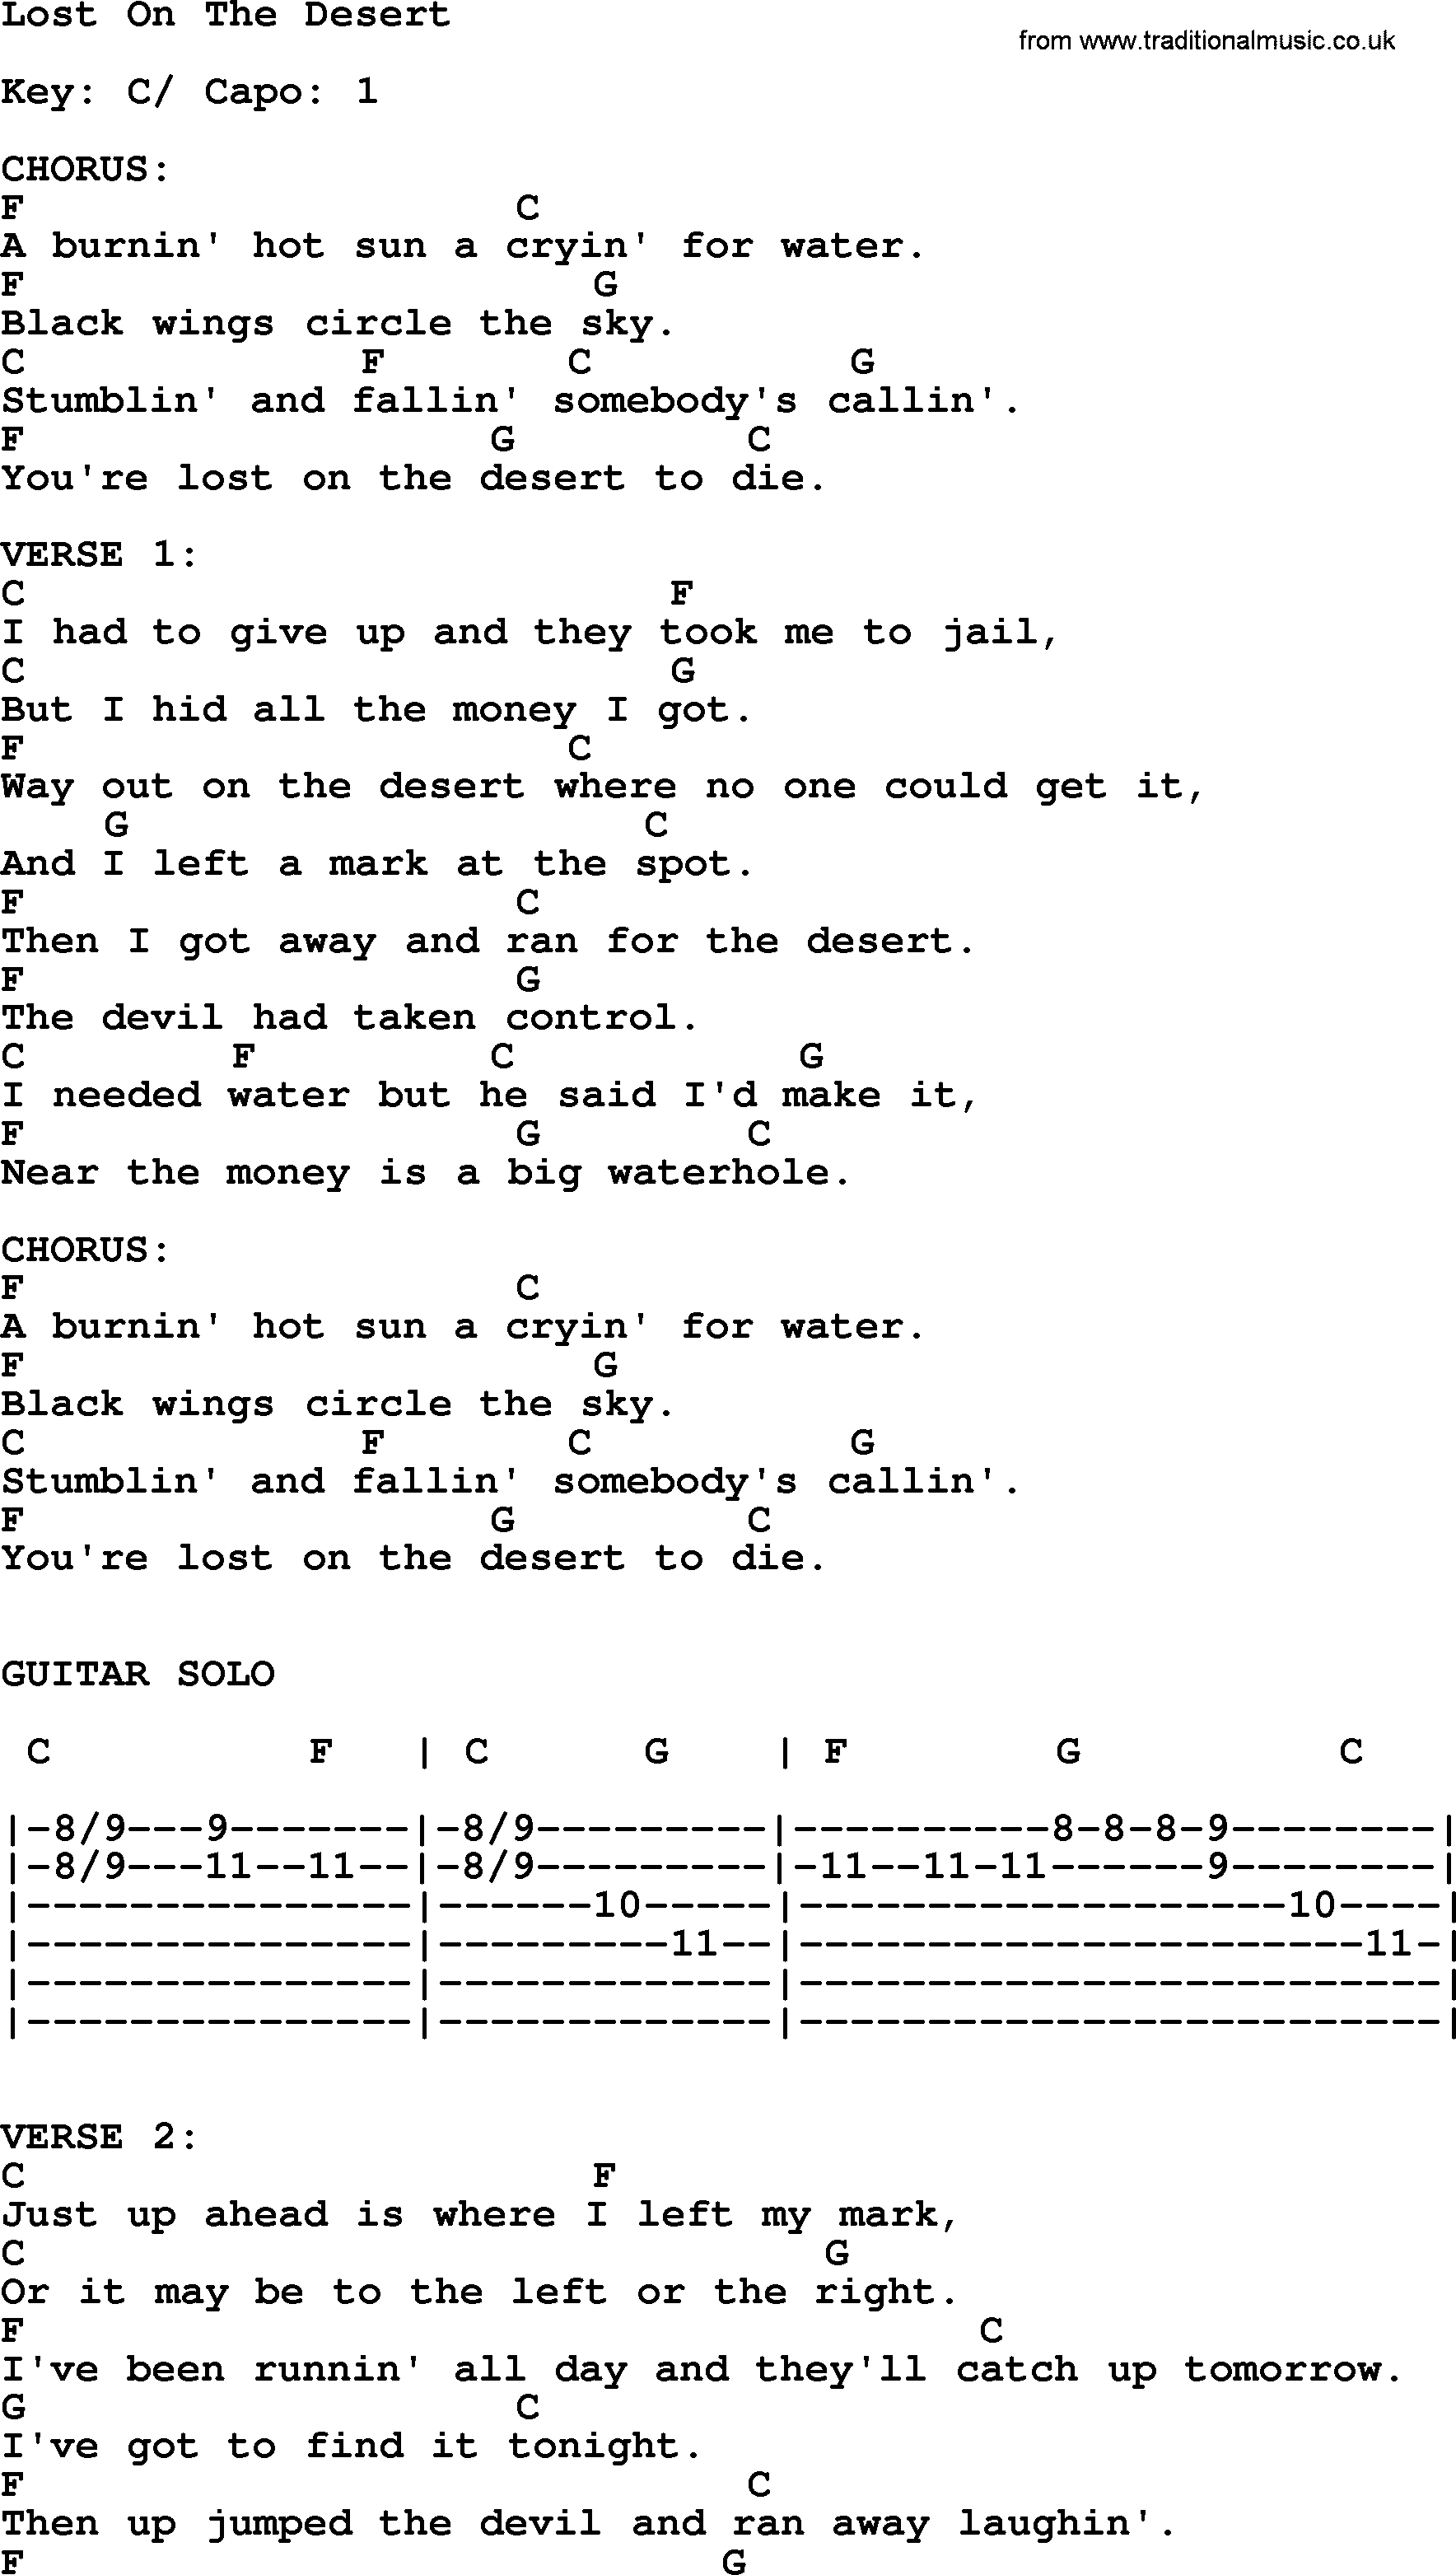 Johnny cash song lost on the desert lyrics and chords johnny cash song lost on the desert lyrics and chords hexwebz Image collections